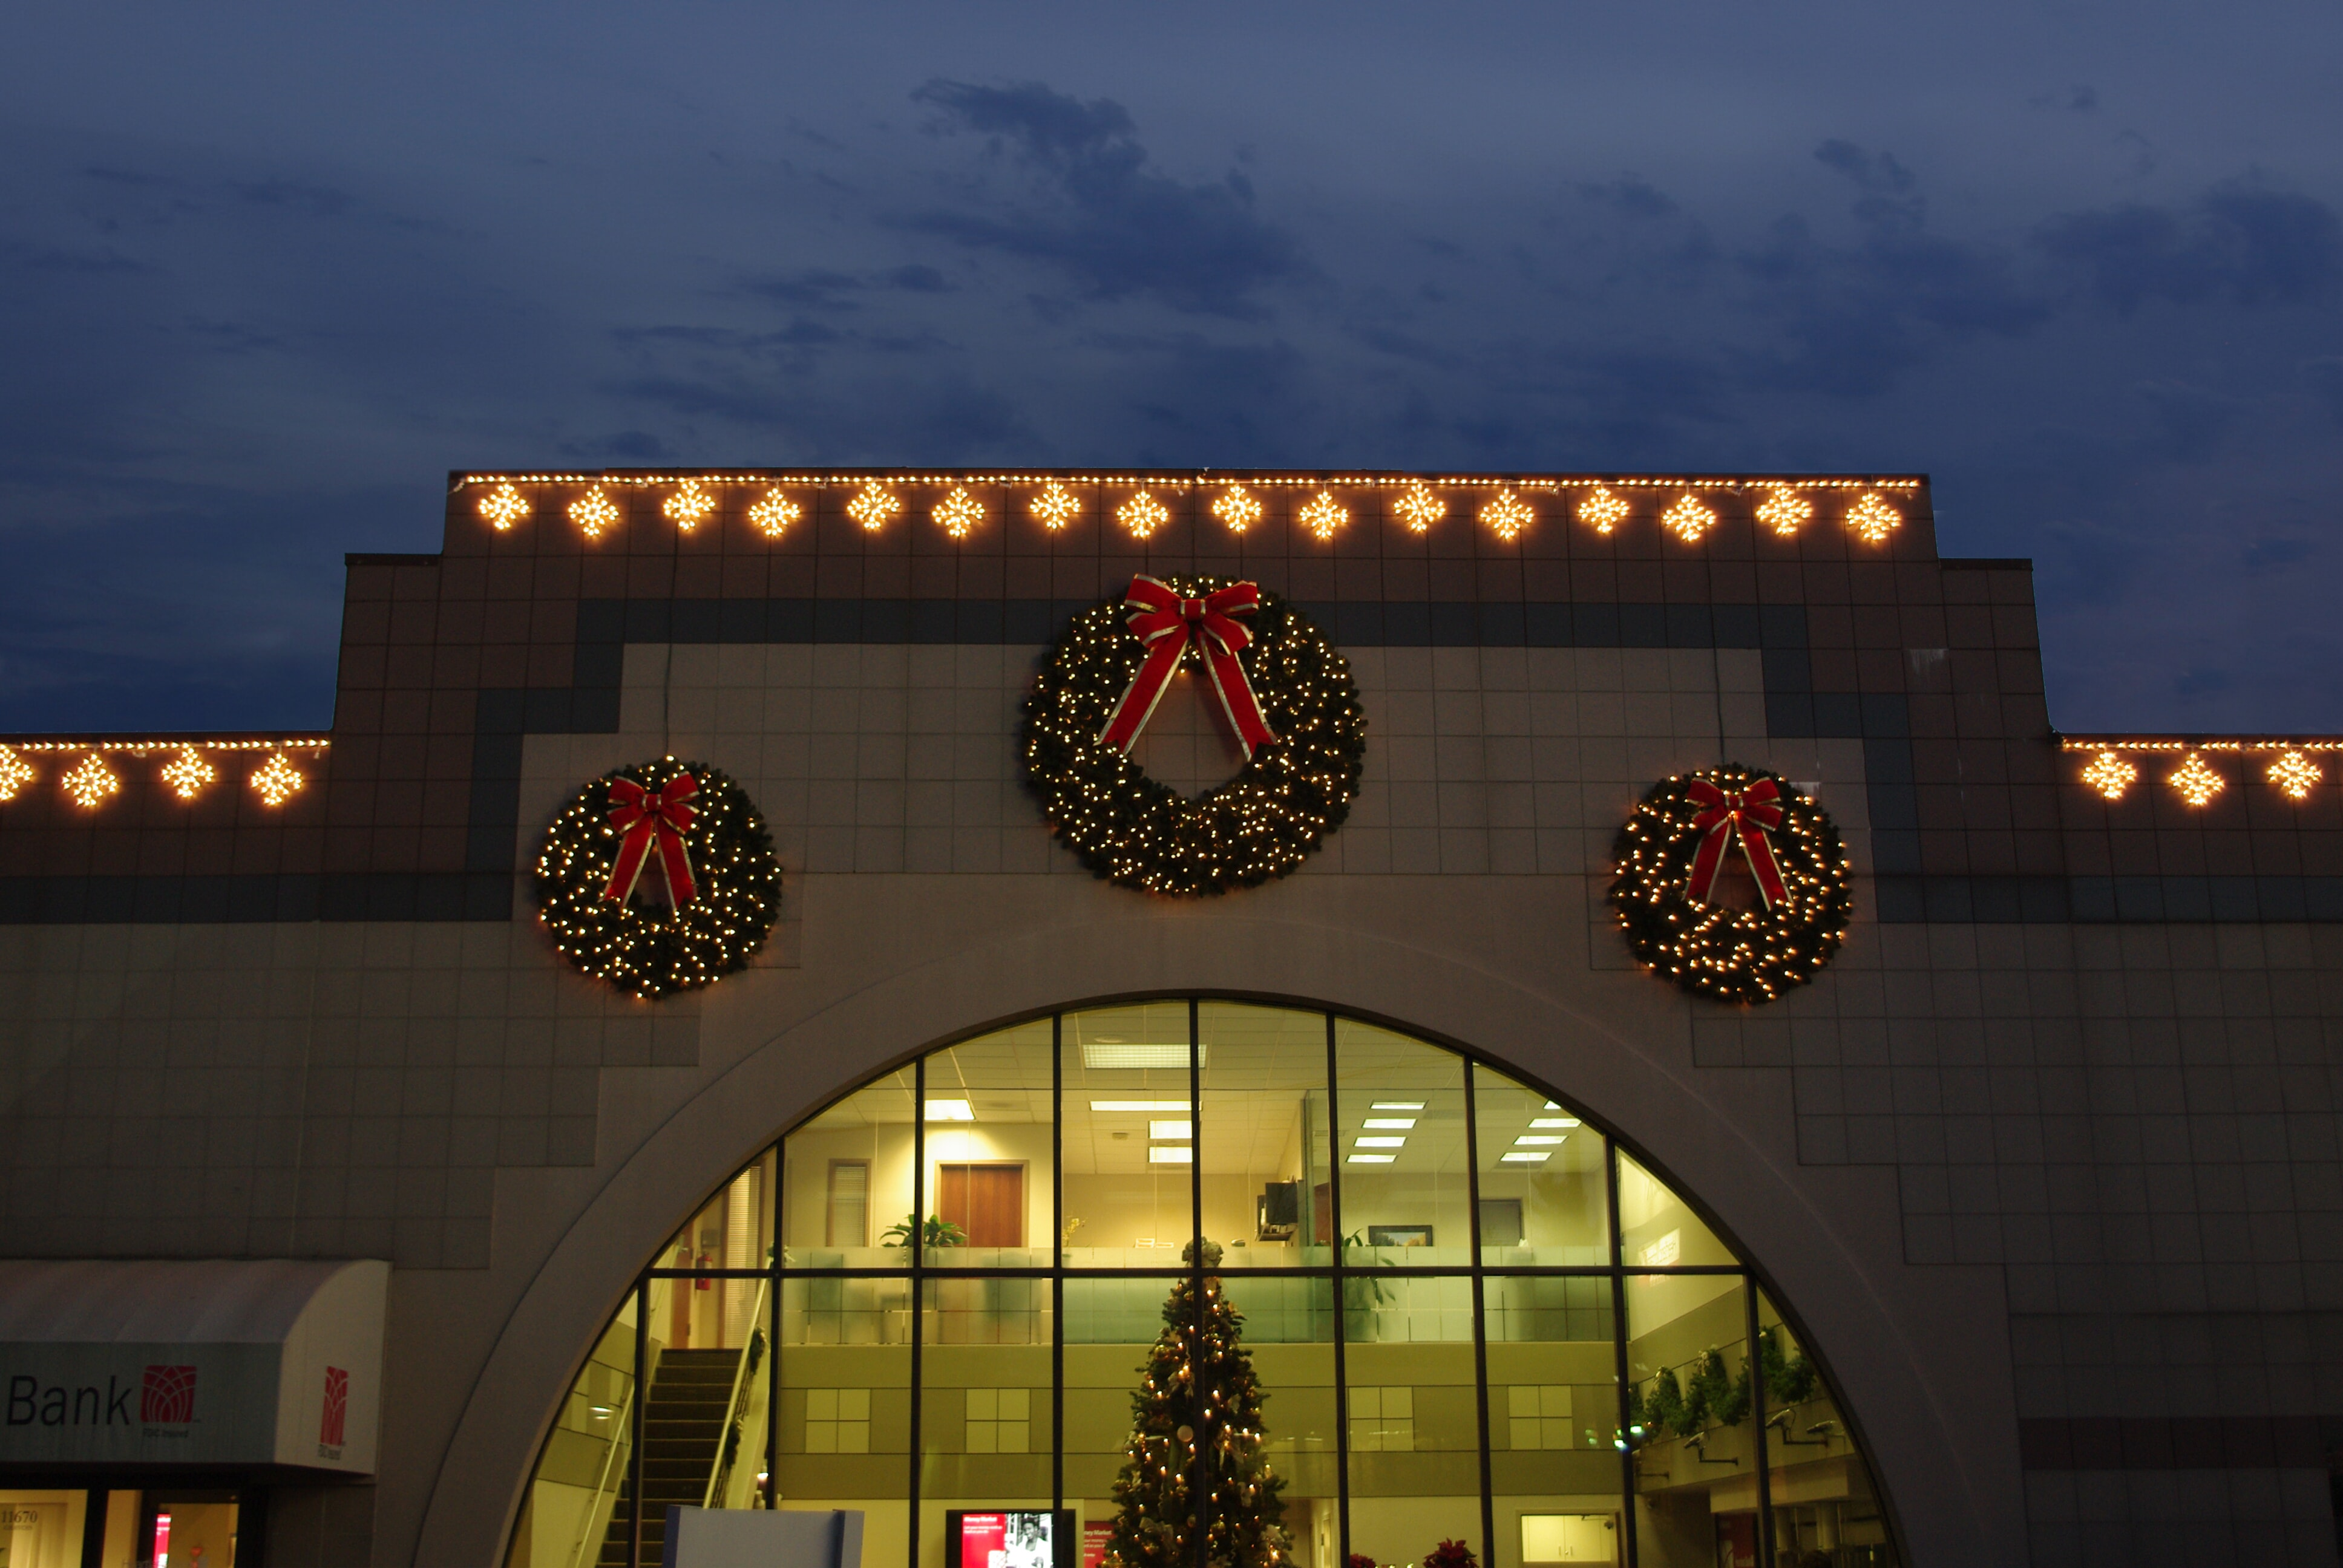 commercial property with holiday wreath and light display